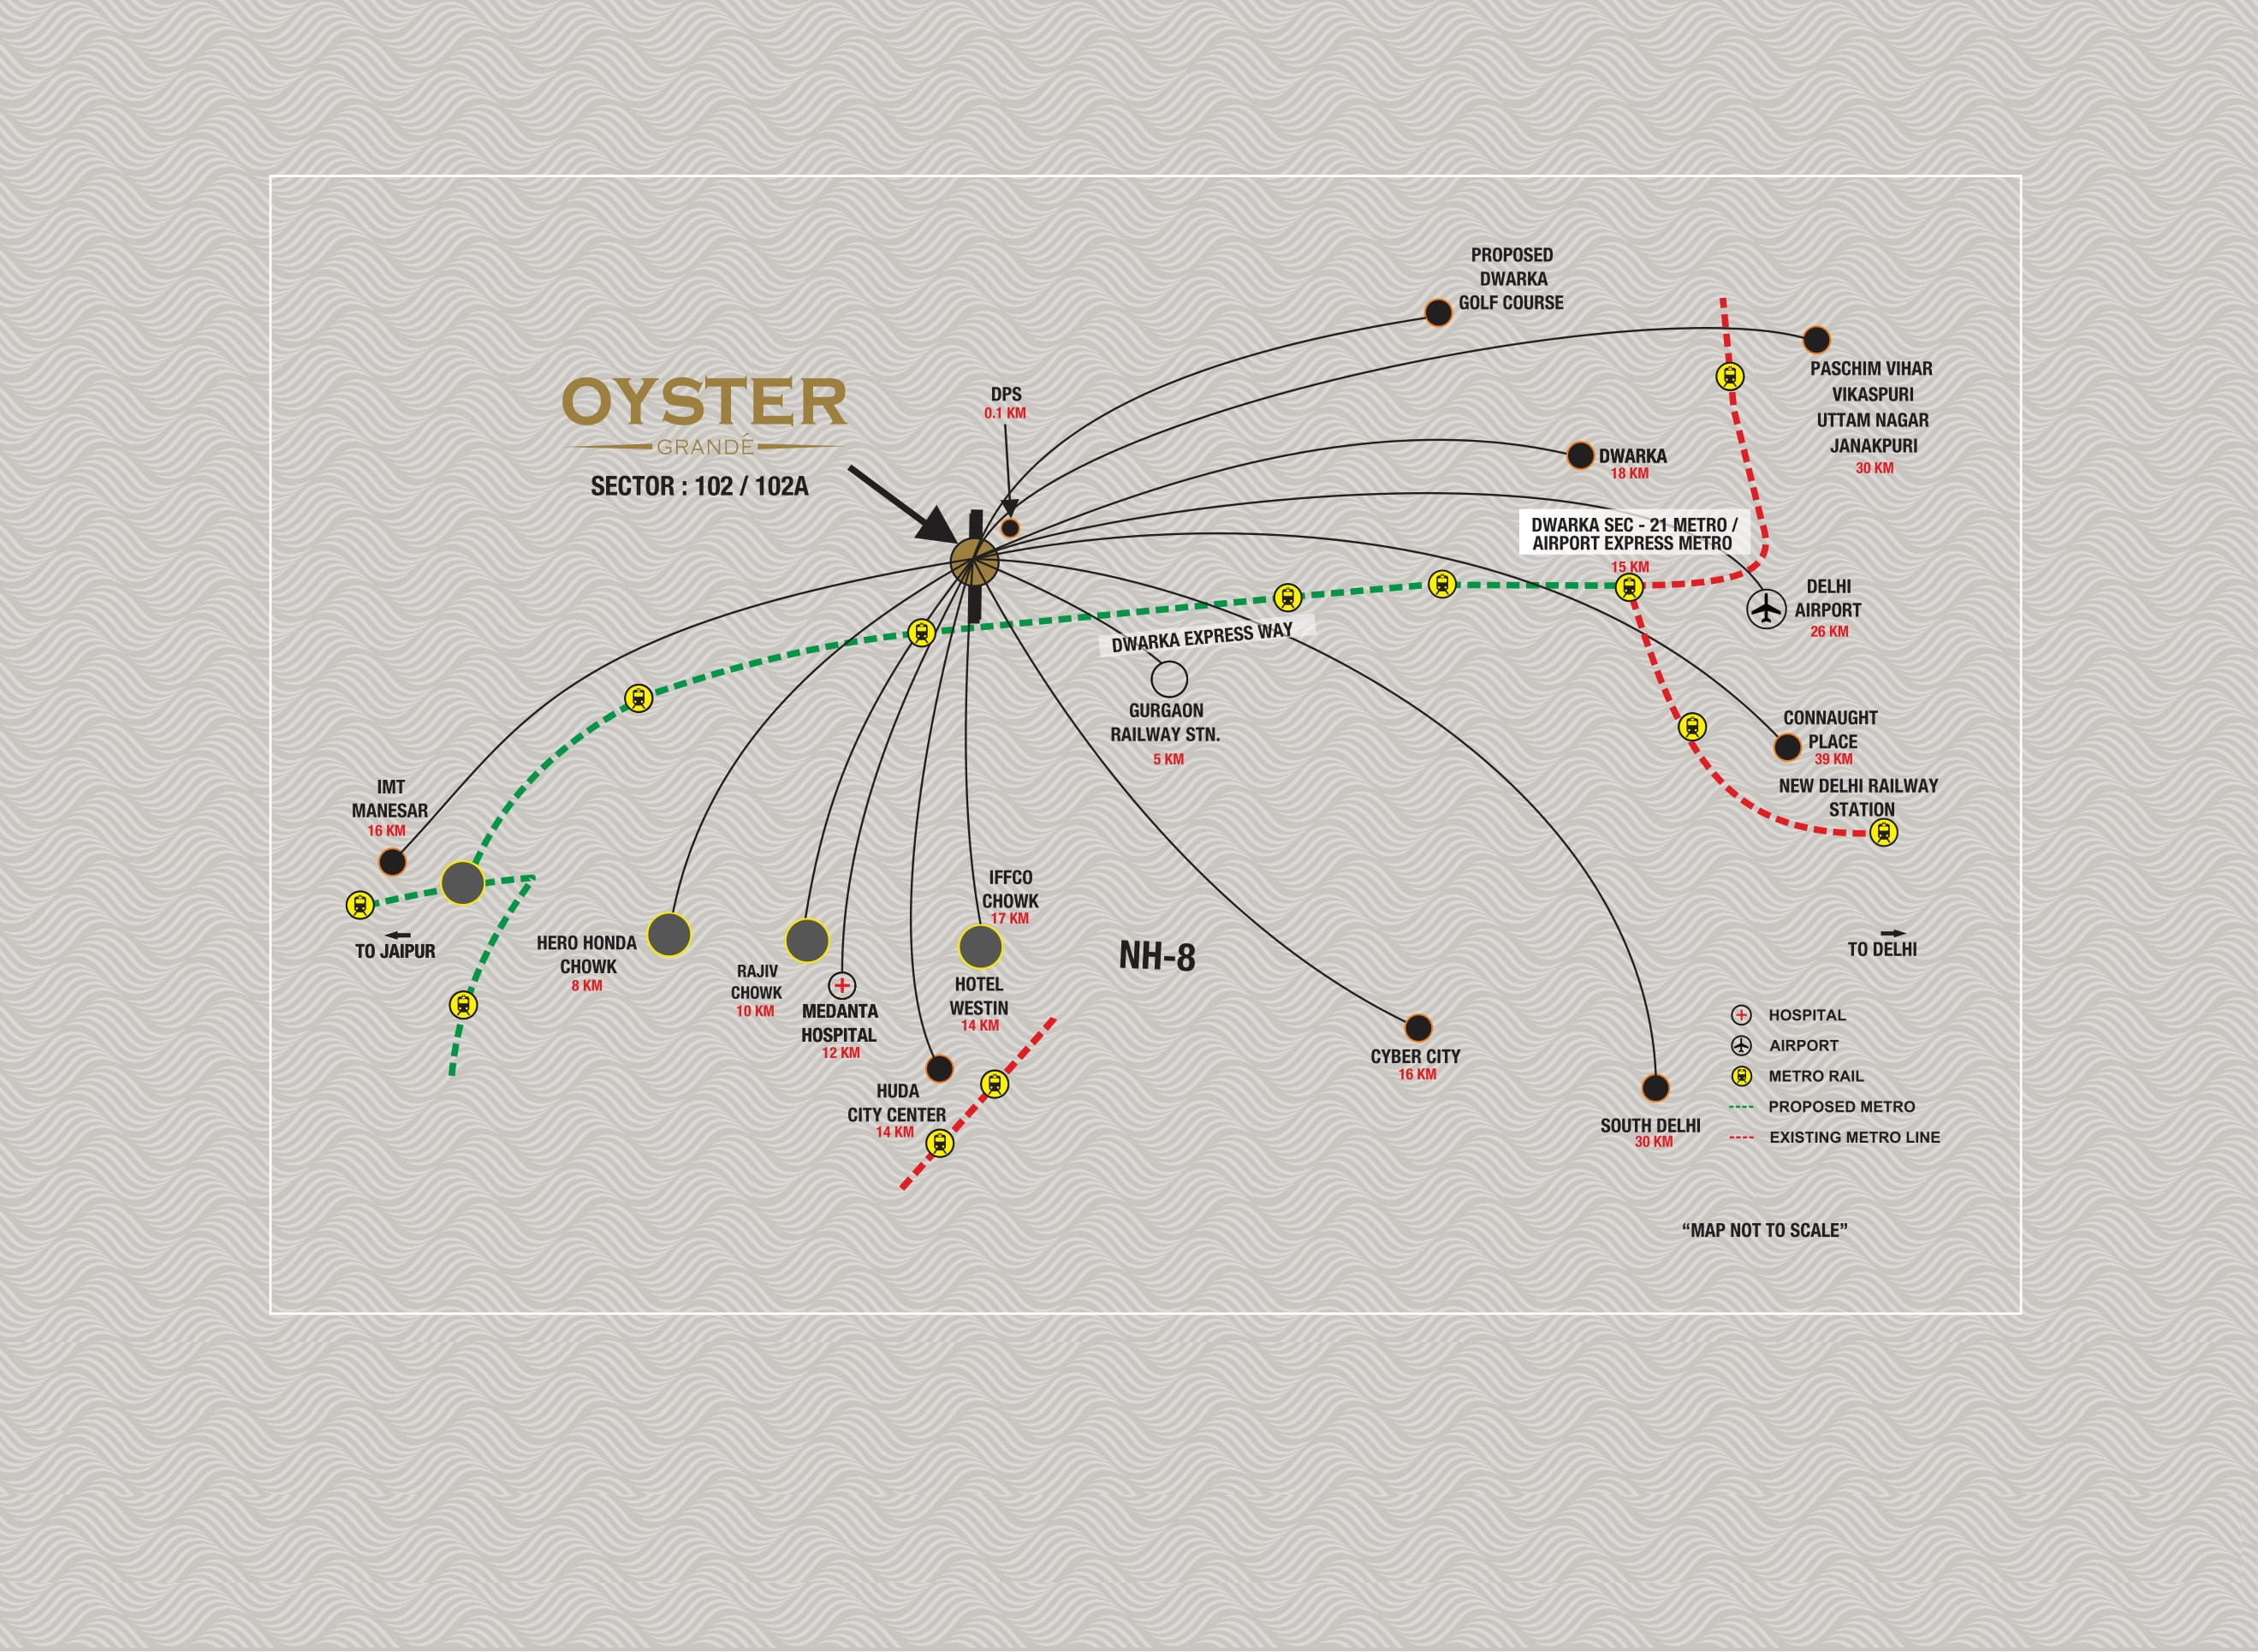 Adani Oyster sector 102 Layout Plan